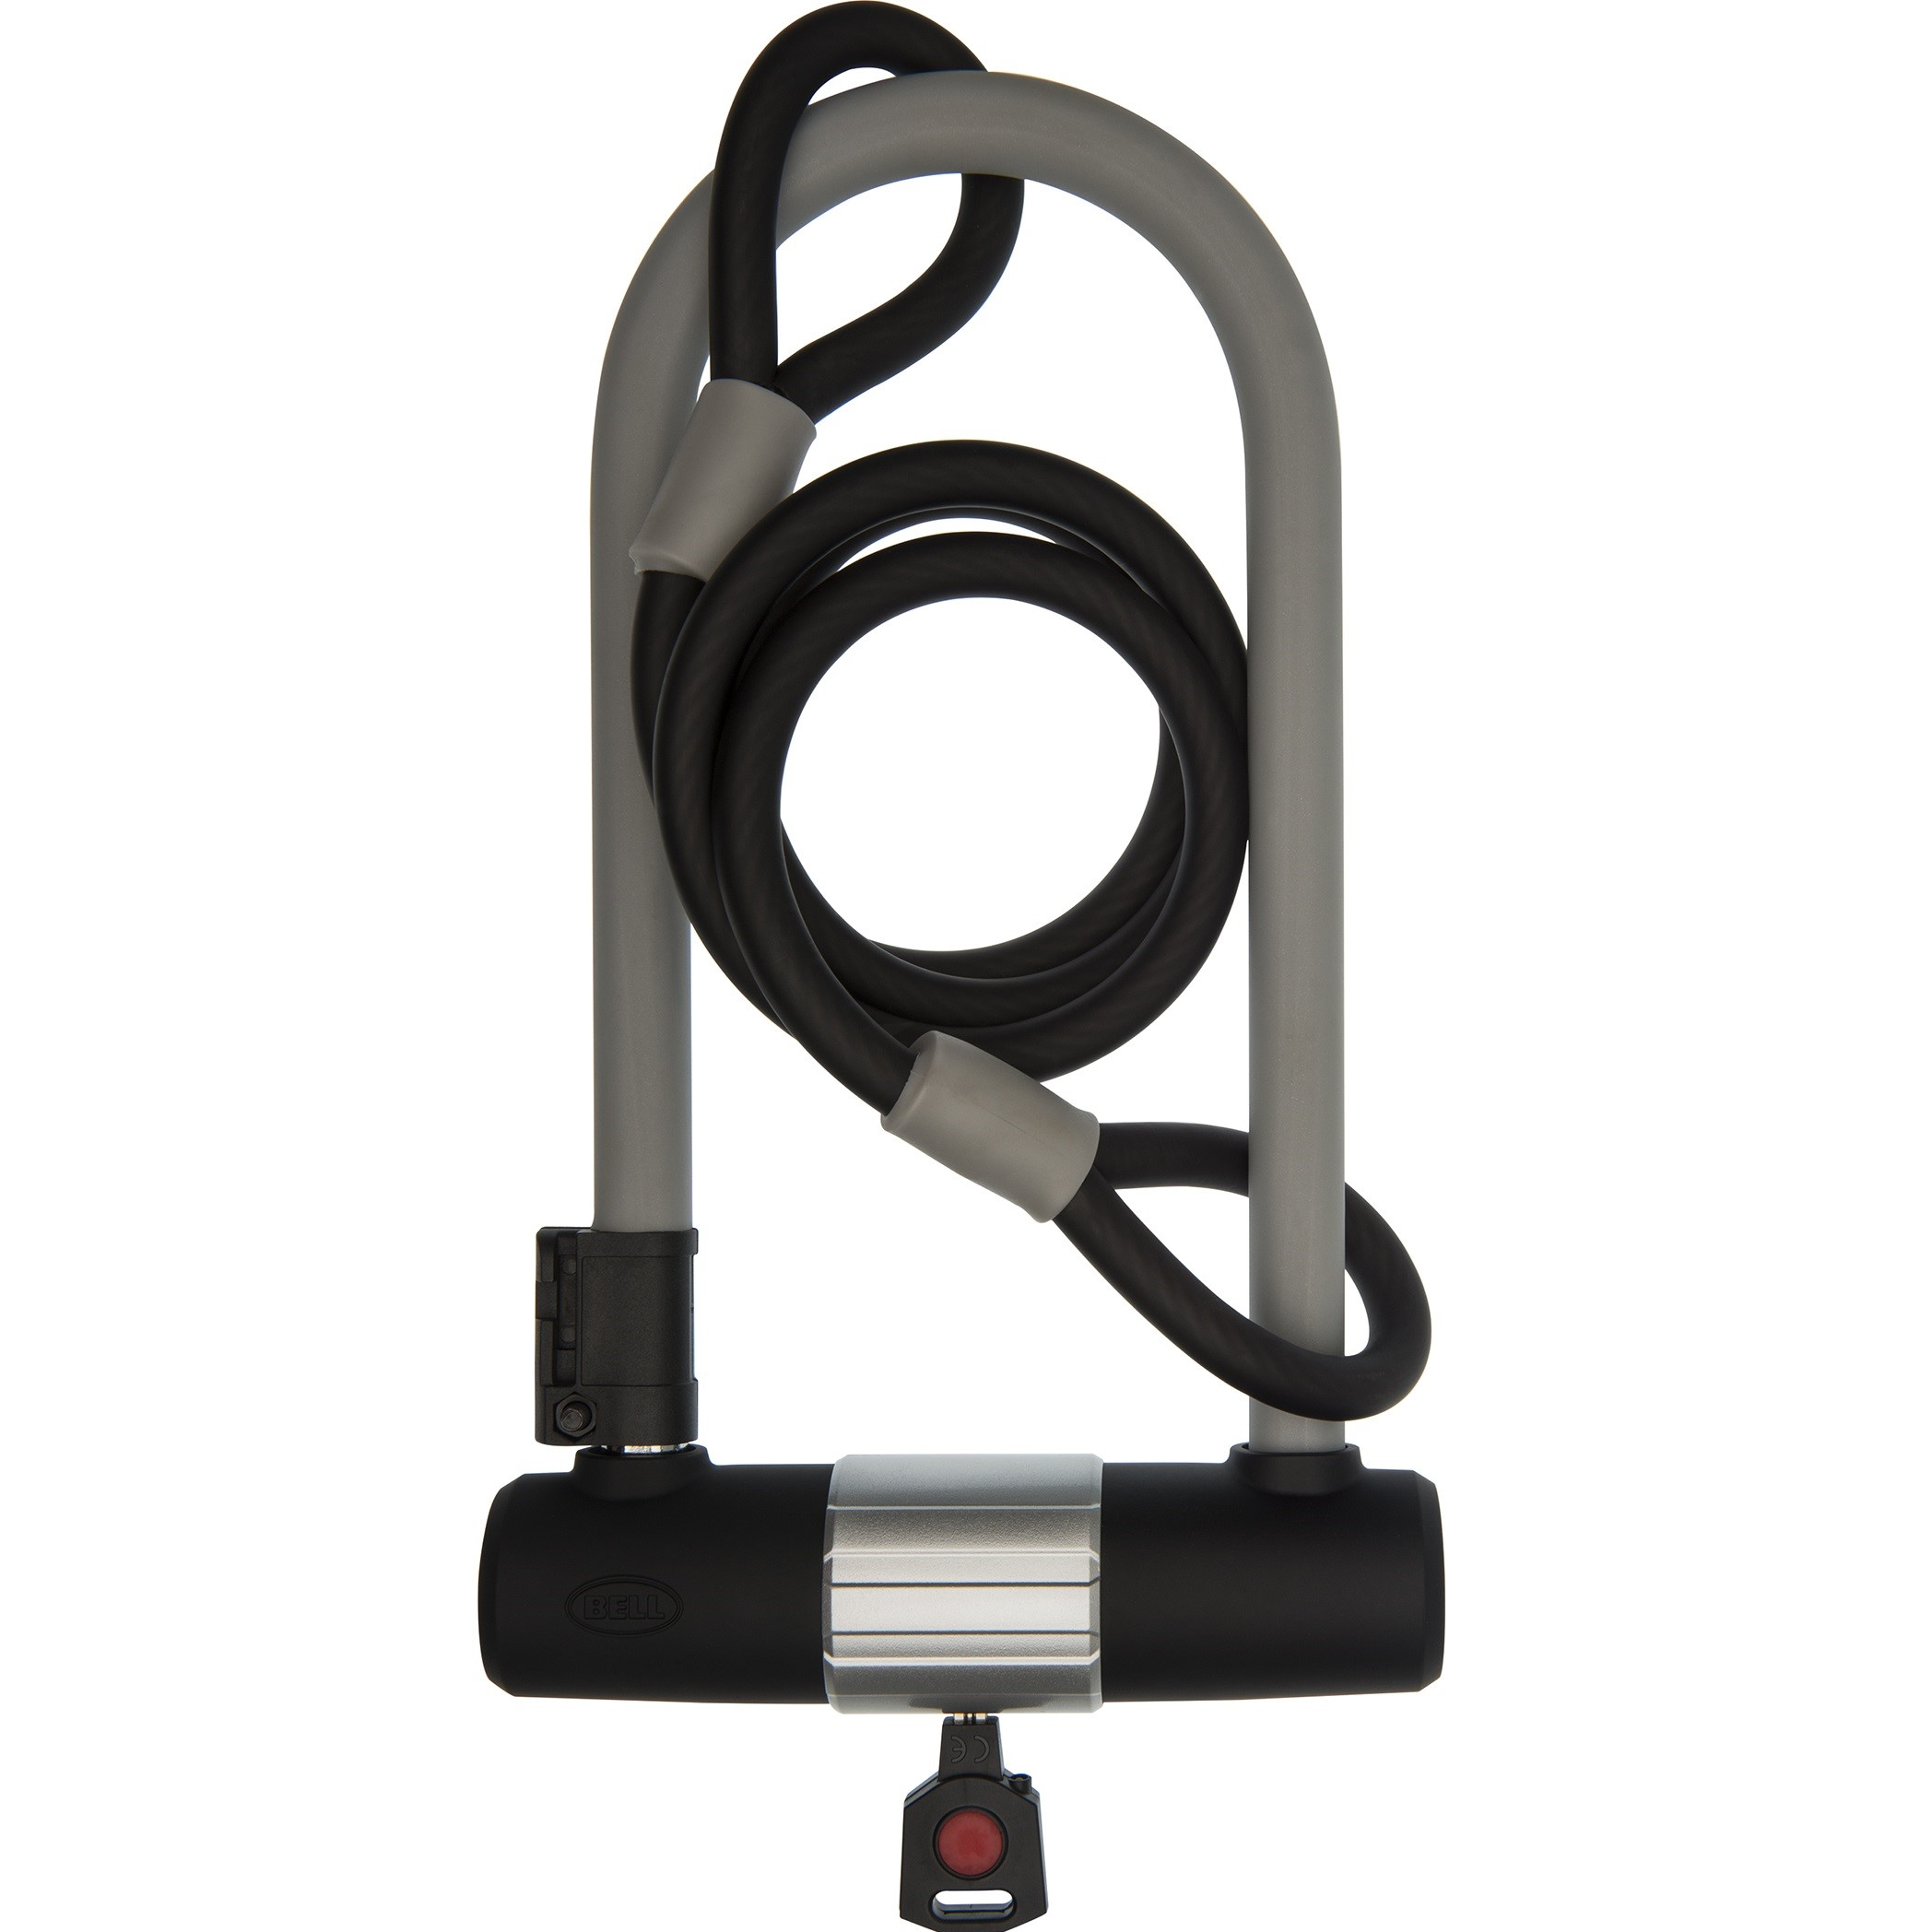 """Bell Sports Catalyst 550 Premium 9.25"""" U-Lock with 4' Cable Bicycle Lock Set, Security Level 5, Gray"""